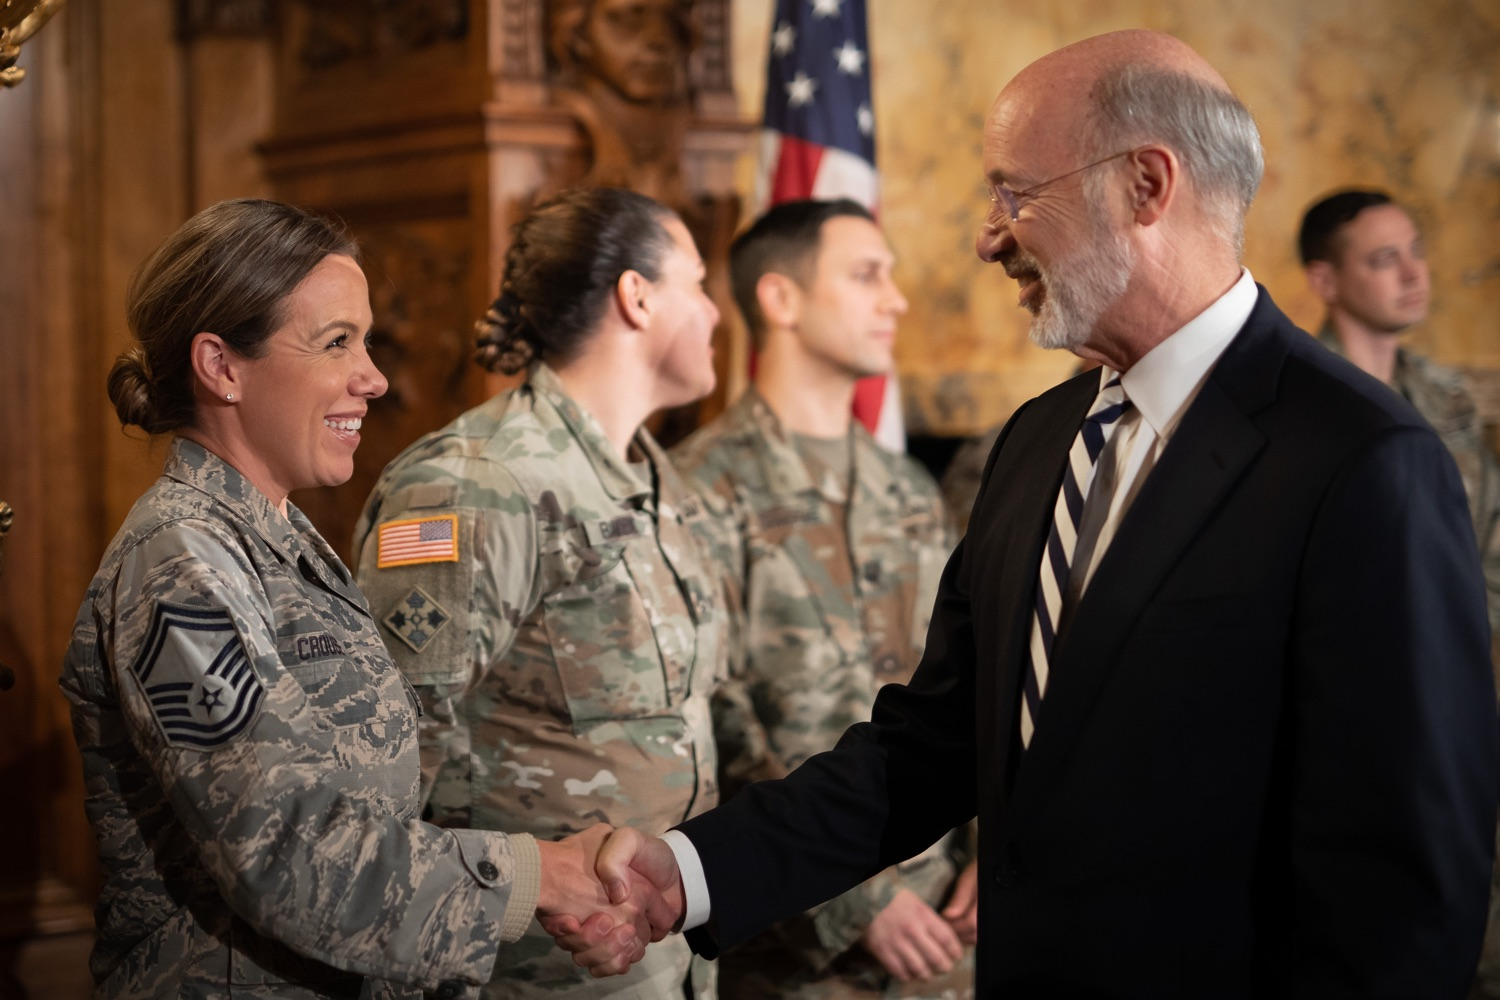 """<a href=""""http://filesource.abacast.com/commonwealthofpa/photo/17563_gov_giBill_dz_003.jpg"""" target=""""_blank"""">⇣Download Photo<br></a>Governor Tom Wolf greeting atendees. Governor Tom Wolf, joined by Pennsylvanias adjutant general and head of the Department of Military and Veterans Affairs Maj. Gen. Anthony Carelli, legislators and PA National Guard members and their families, encouraged PA National Guard members to take advantage of the new Military Family Education Program, or PA GI bill, now open for enrollment. Harrisburg, PA Monday, November 4 2019"""